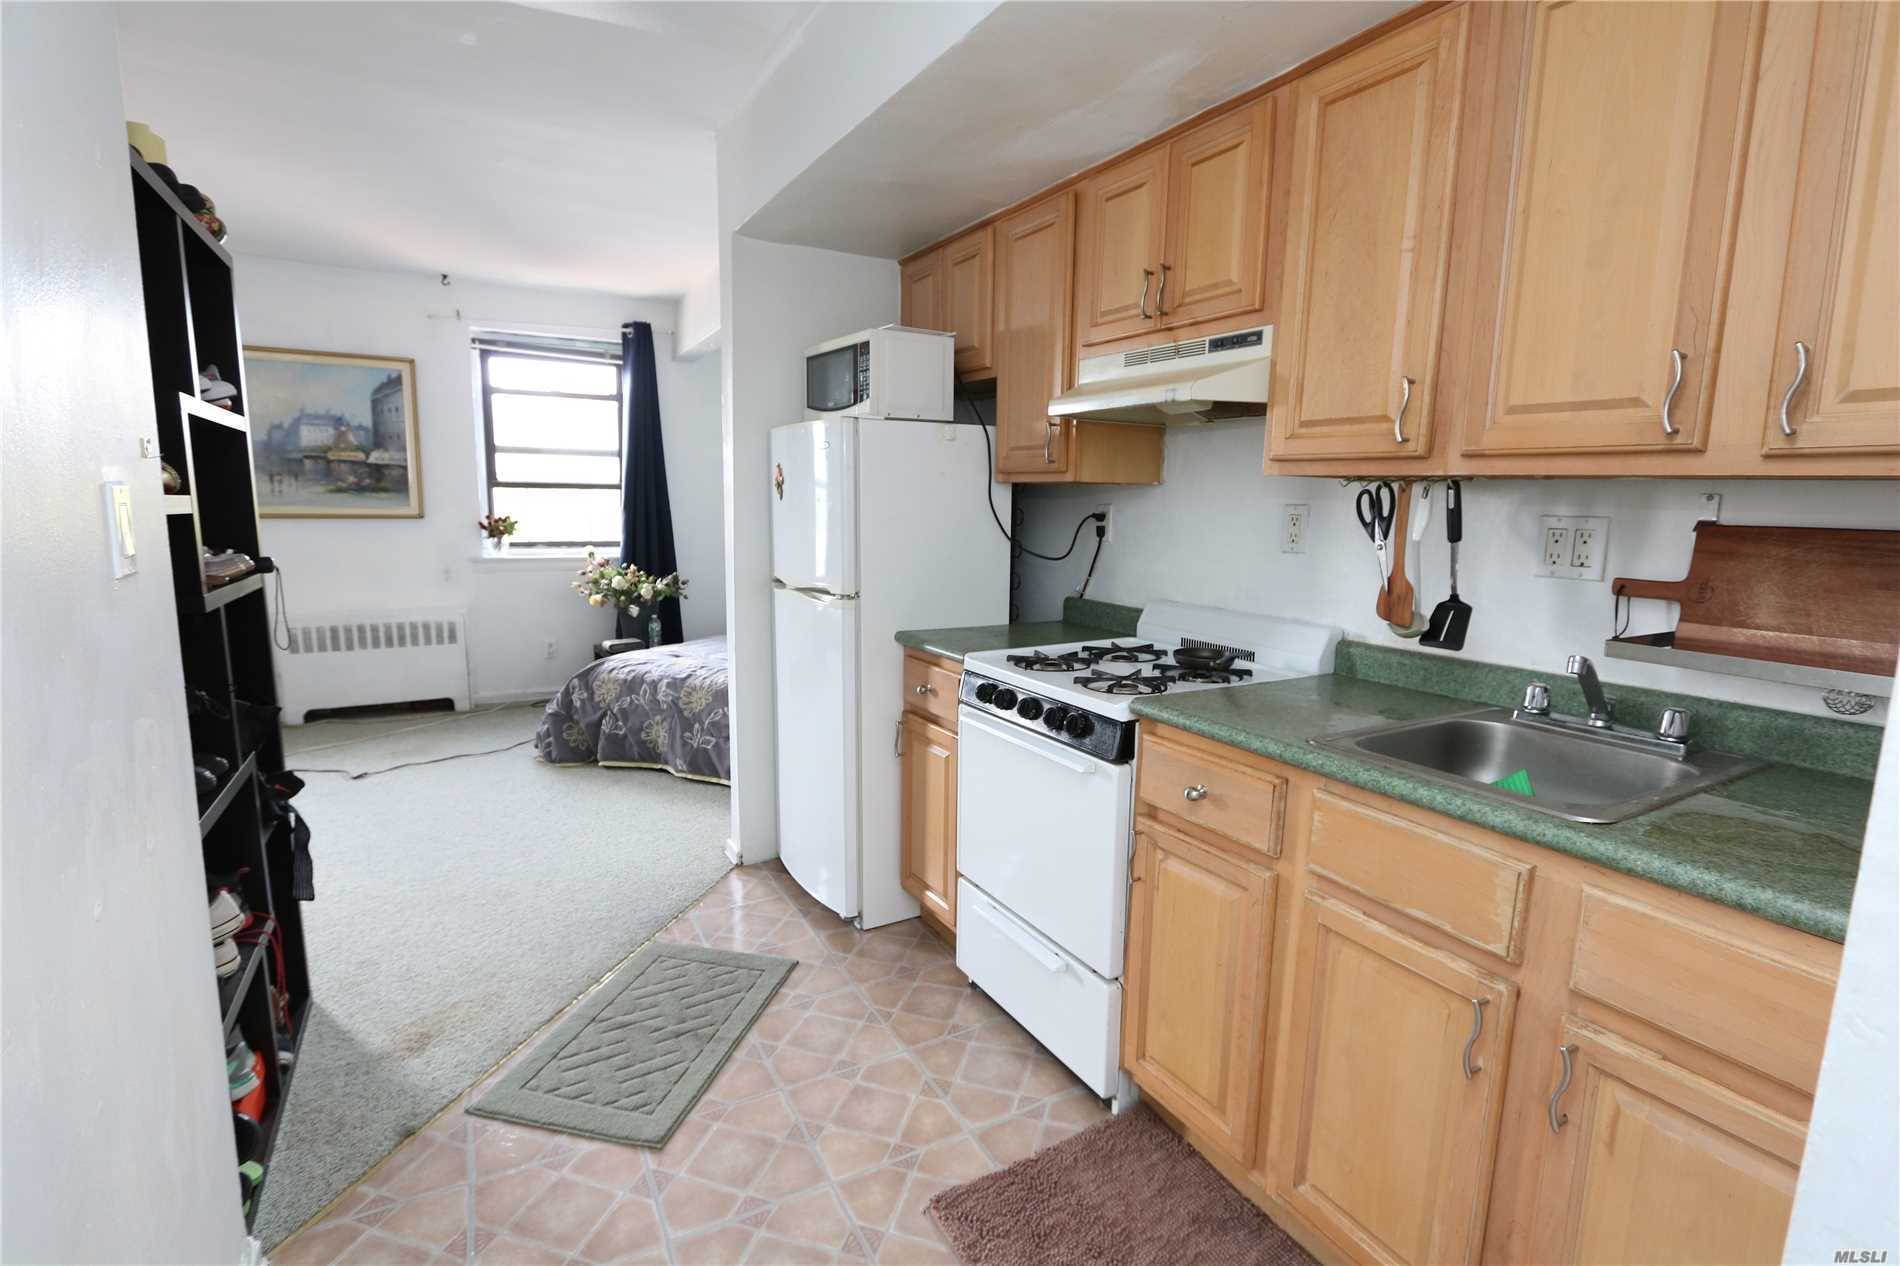 Sunny Studio In The Top Floor With An Updated Kitchen And Bath, 3 Minute Walk To The Train Station/Just 1 Block Away From Shopping, Supermarket And Restaurants.